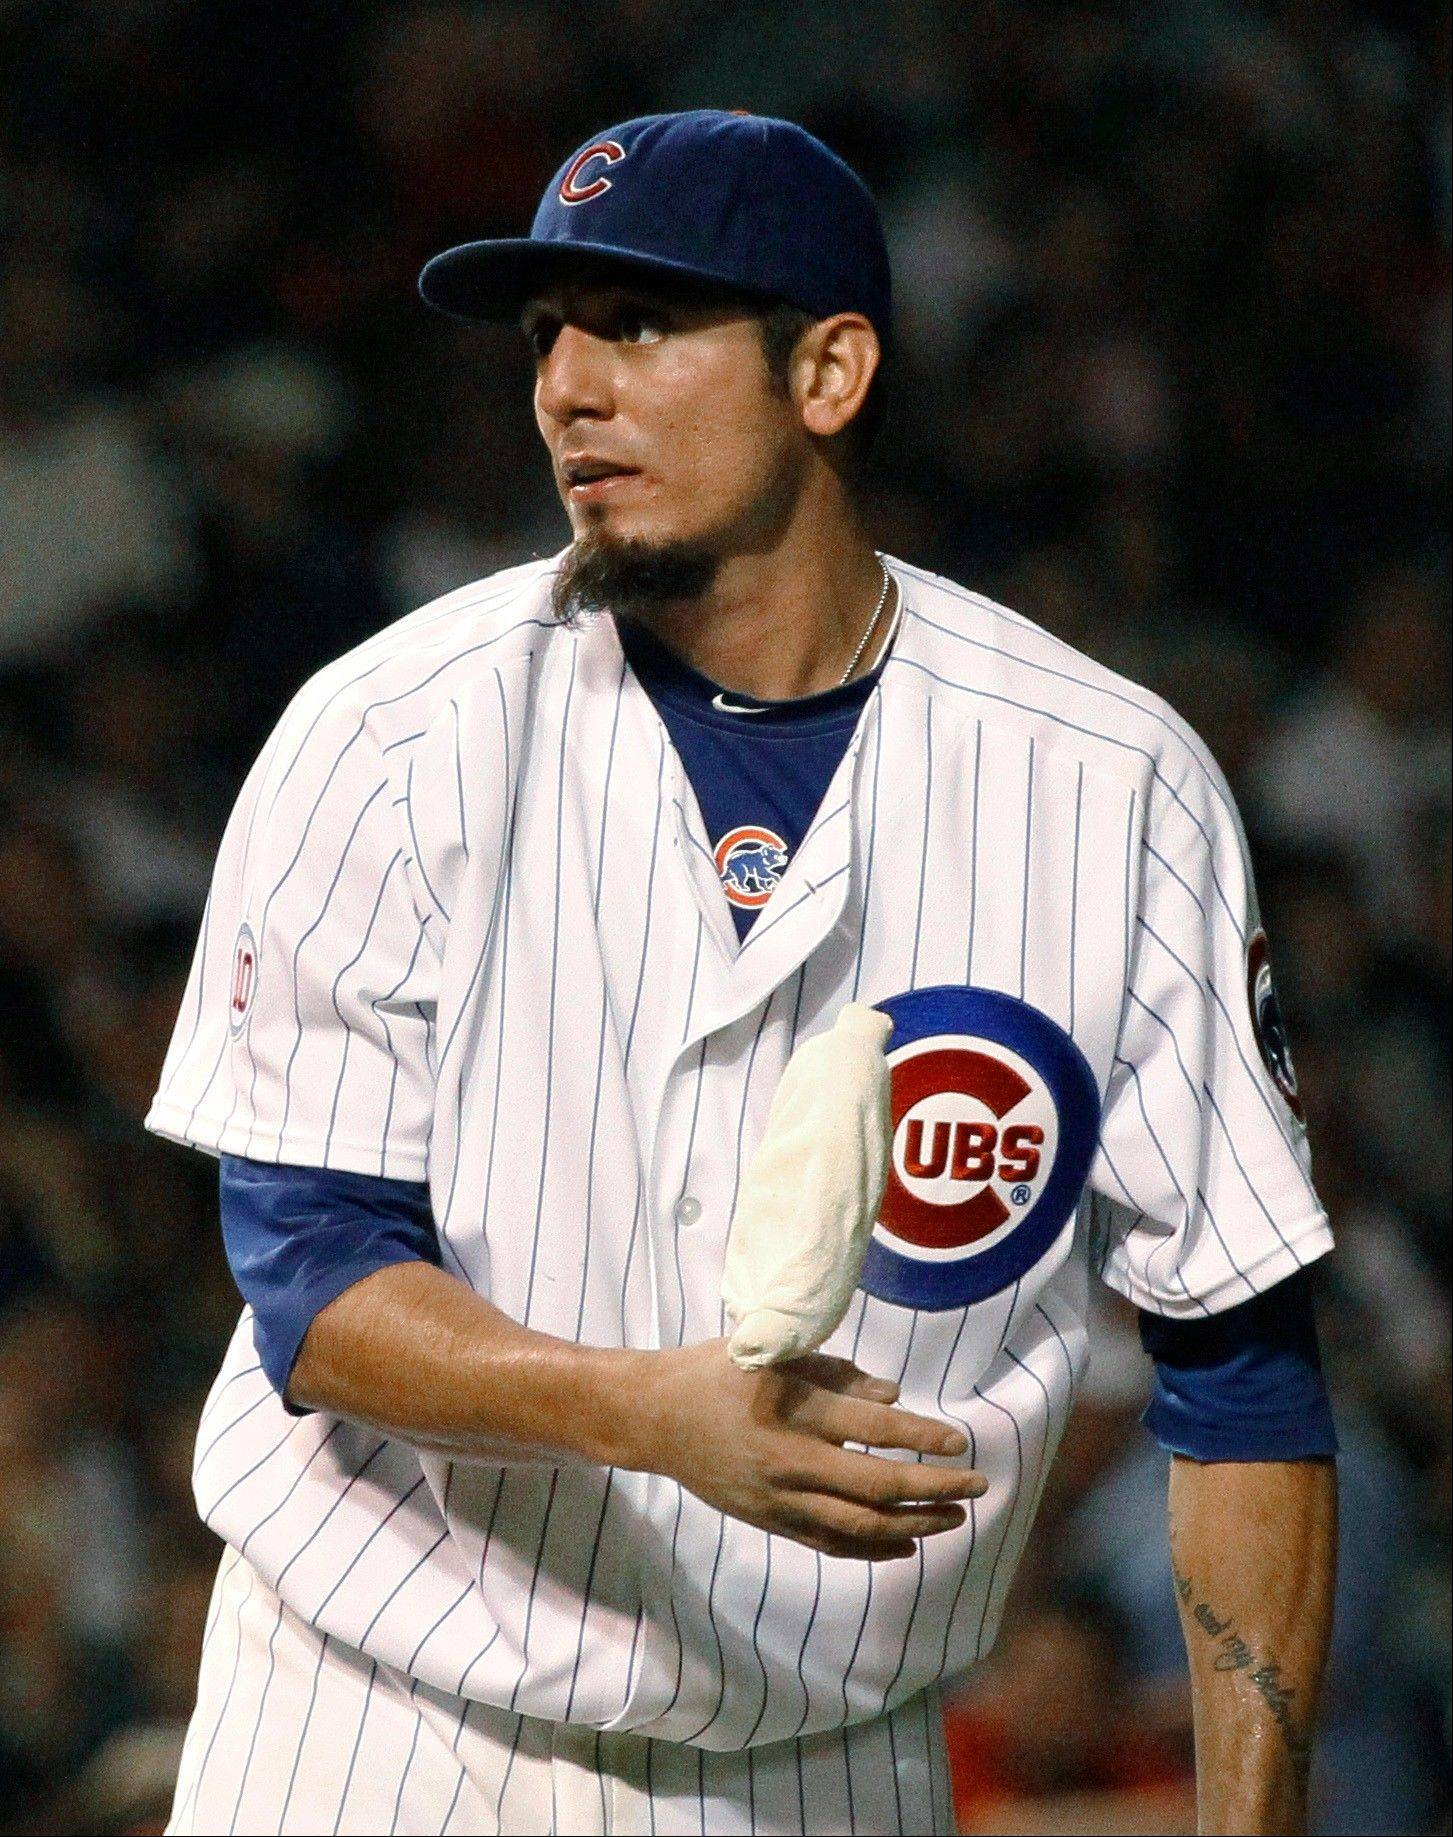 Chicago Cubs starting pitcher Matt Garza uses the rosin bag during the seventh inning against the Philadelphia Phillies. He was taken out in the eighth.